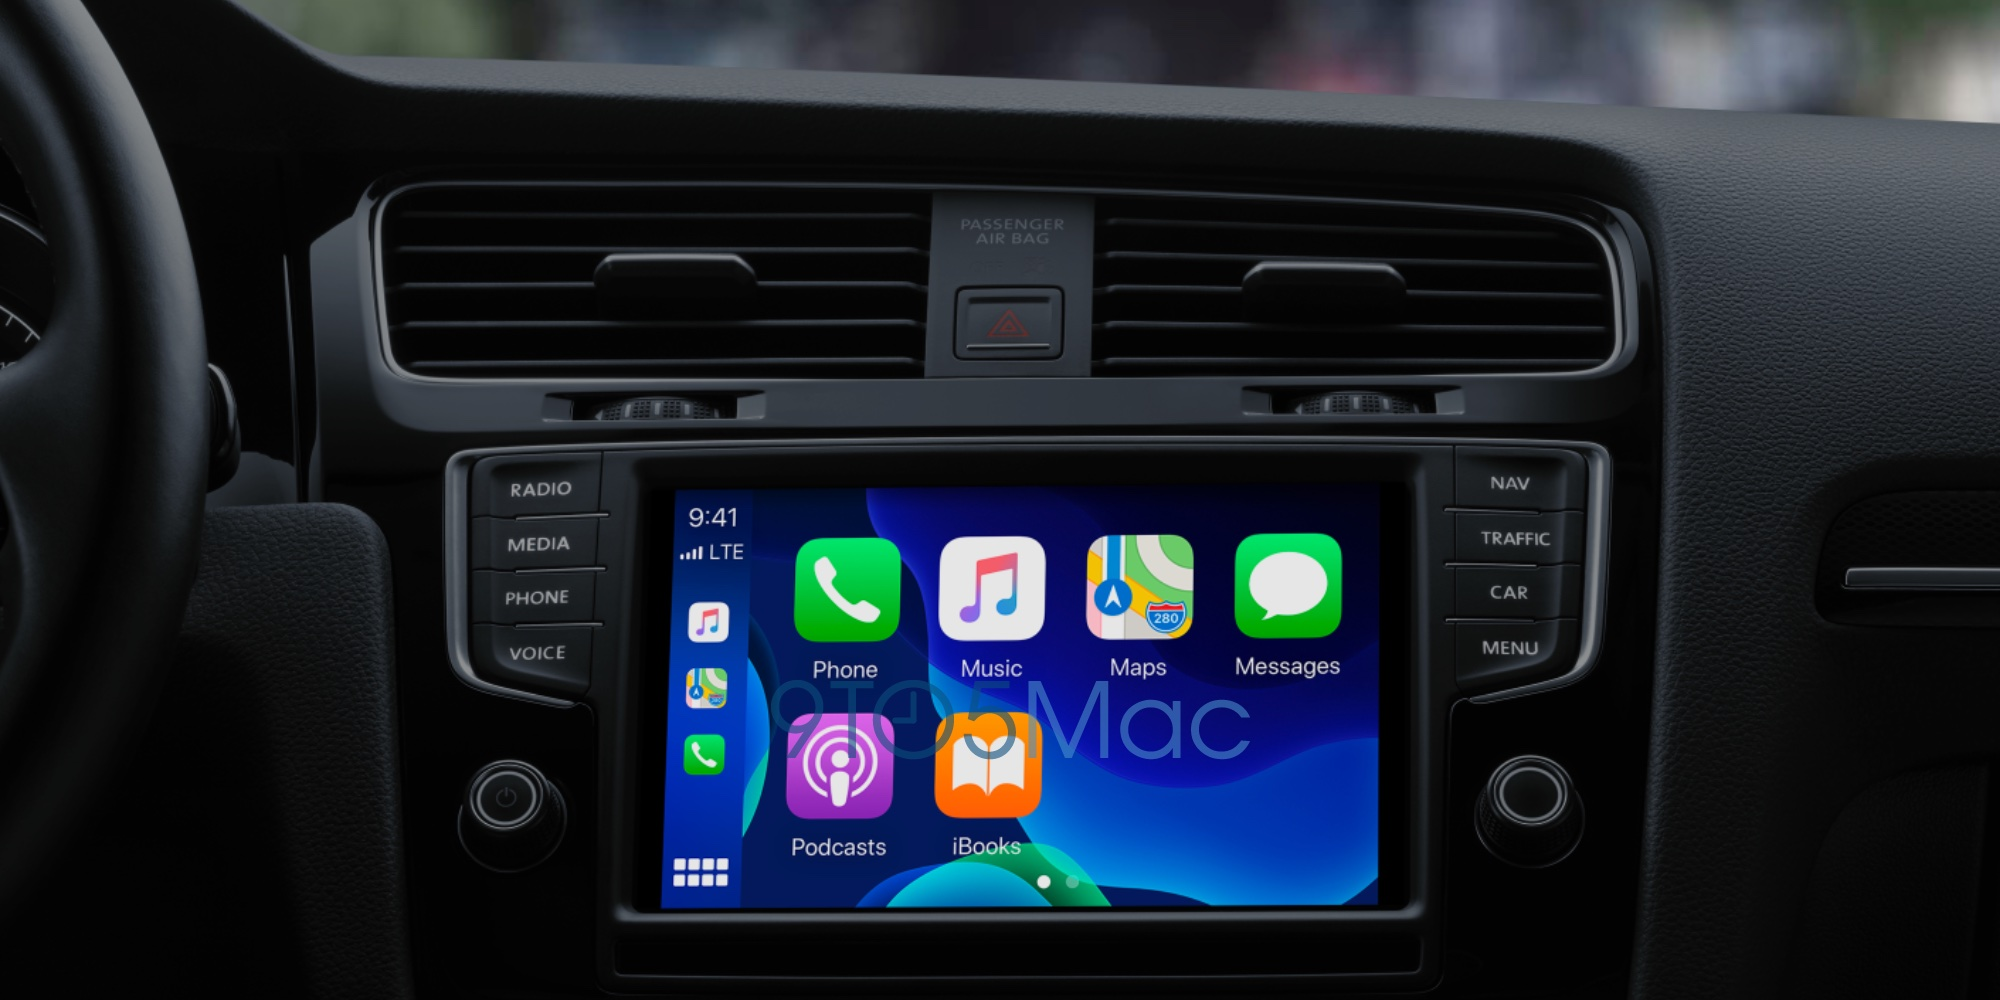 CarPlay May Support Wallpapers in iOS 14